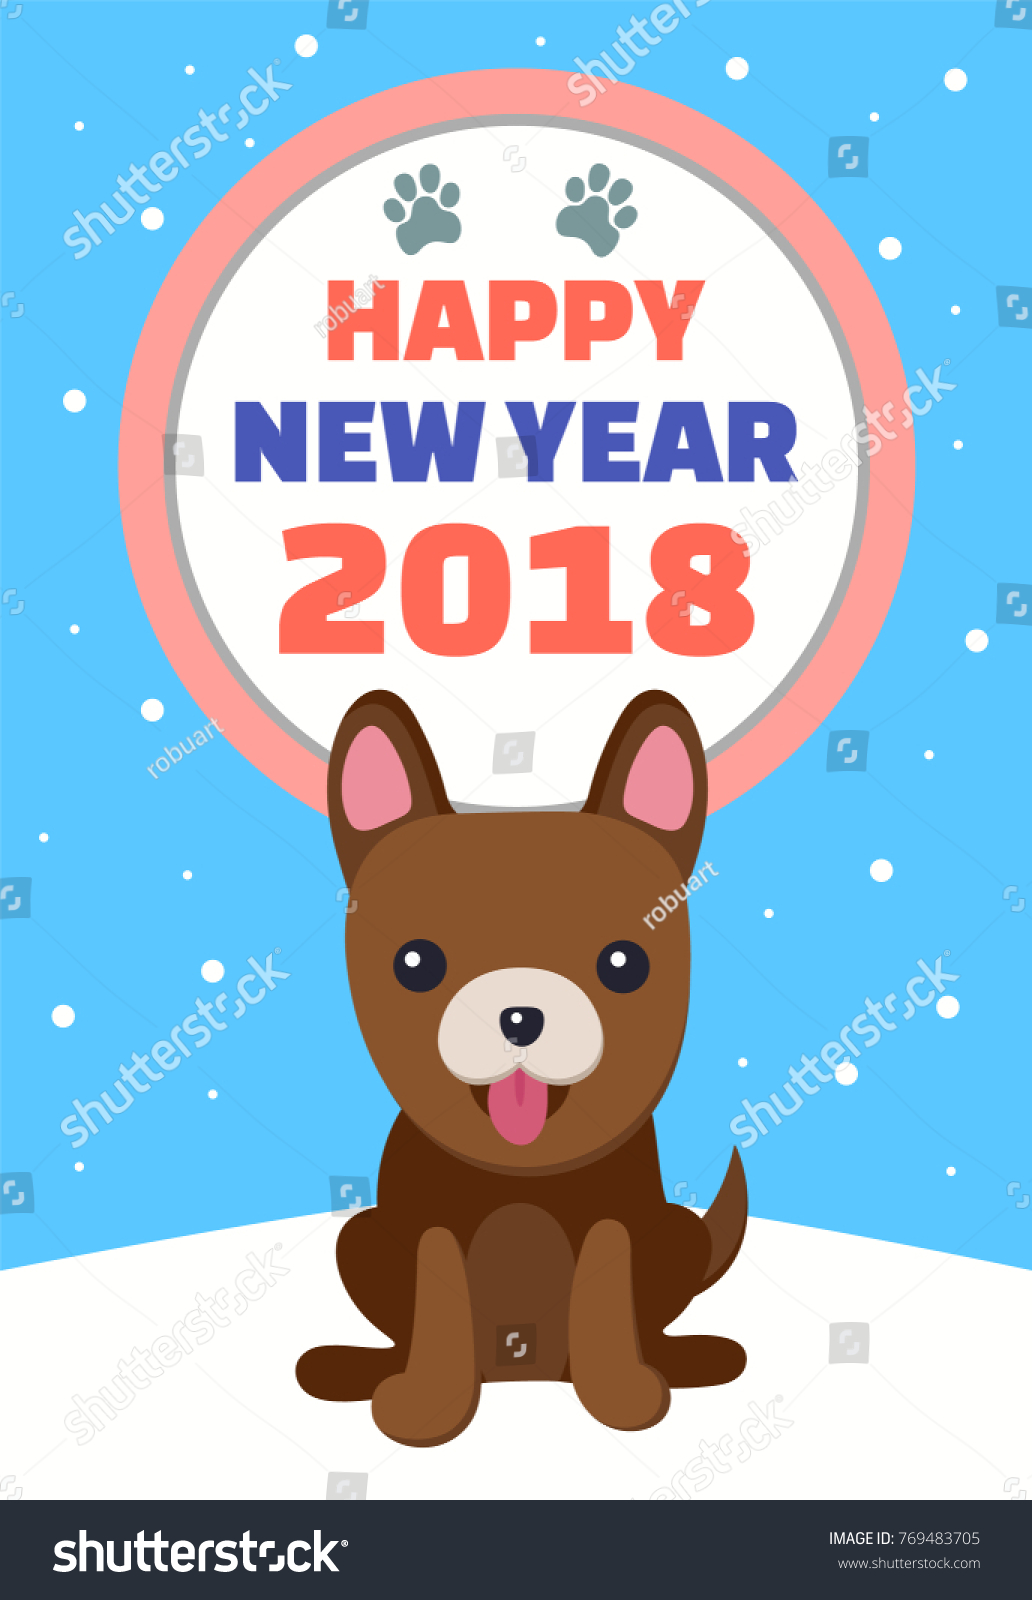 happy new year 2018 promotional banner with dog sitting and sticking out tongue lettering